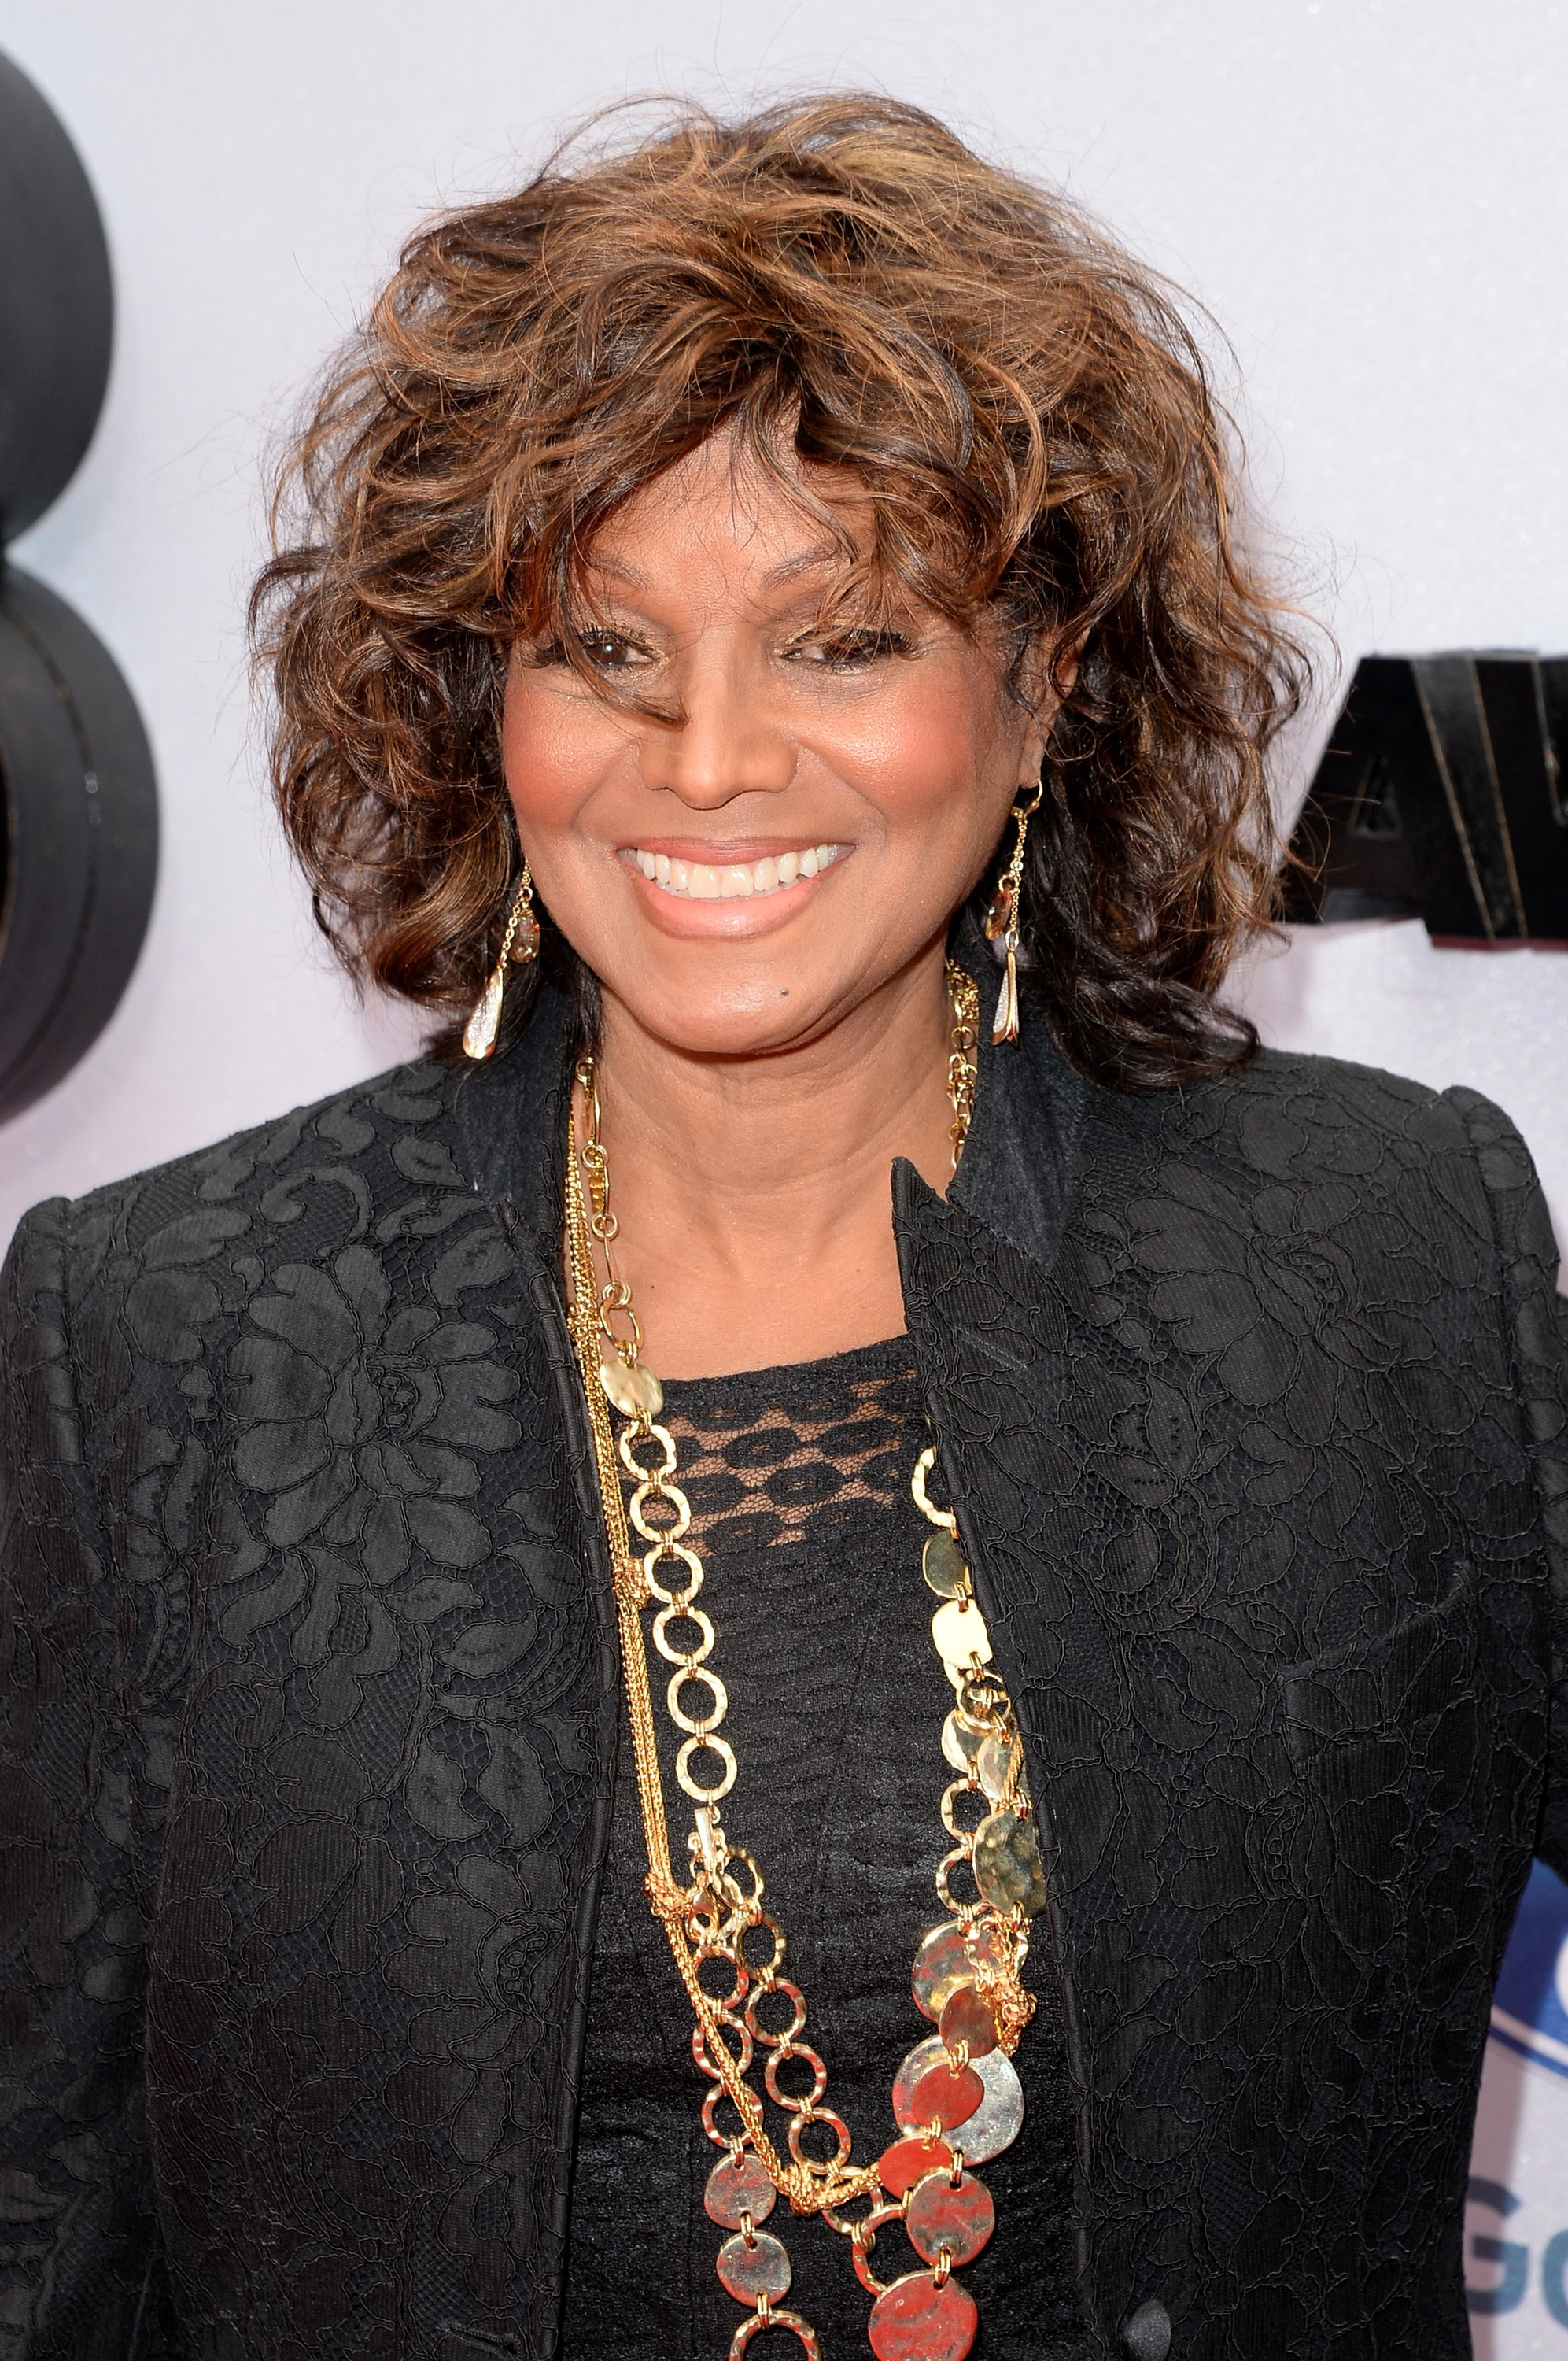 Rebbie Jackson at the red carpet of the 2013 BET Awards on June 30, 2013. | Photo: Getty Images